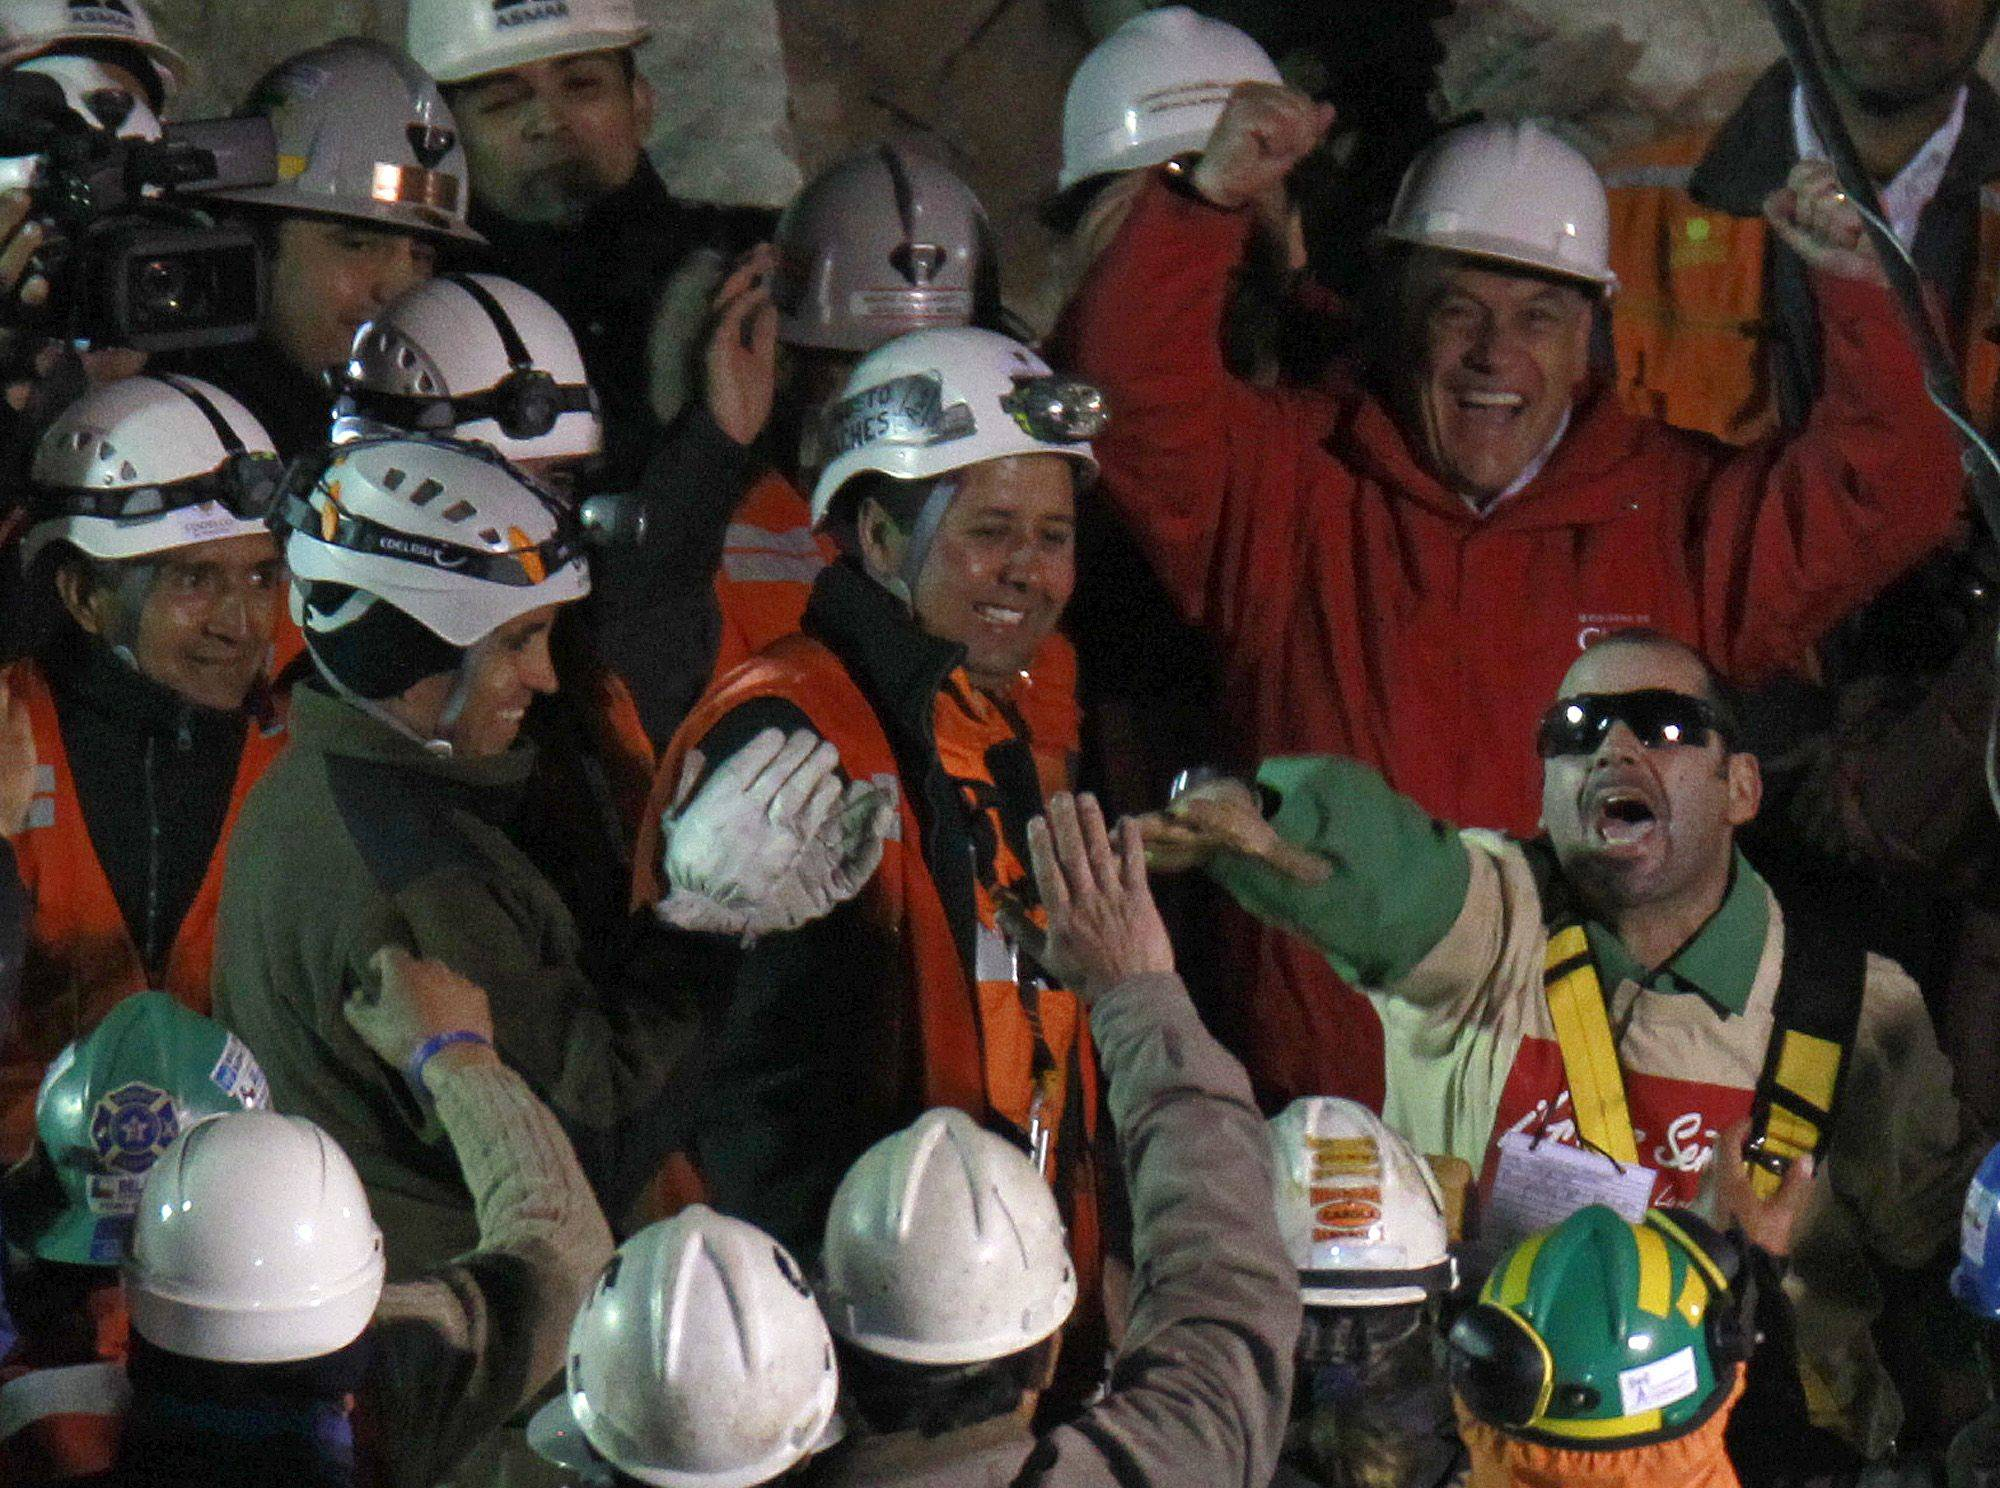 Chile's President Sebastian Pinera, top right, cheers as rescued miner Mario Sepulveda Espina, right, salutes after being rescued from the the collapsed San Jose gold and copper mine where he was trapped with 32 other miners for over two months near Copiapo, Chile, early Wednesday Oct. 13, 2010.